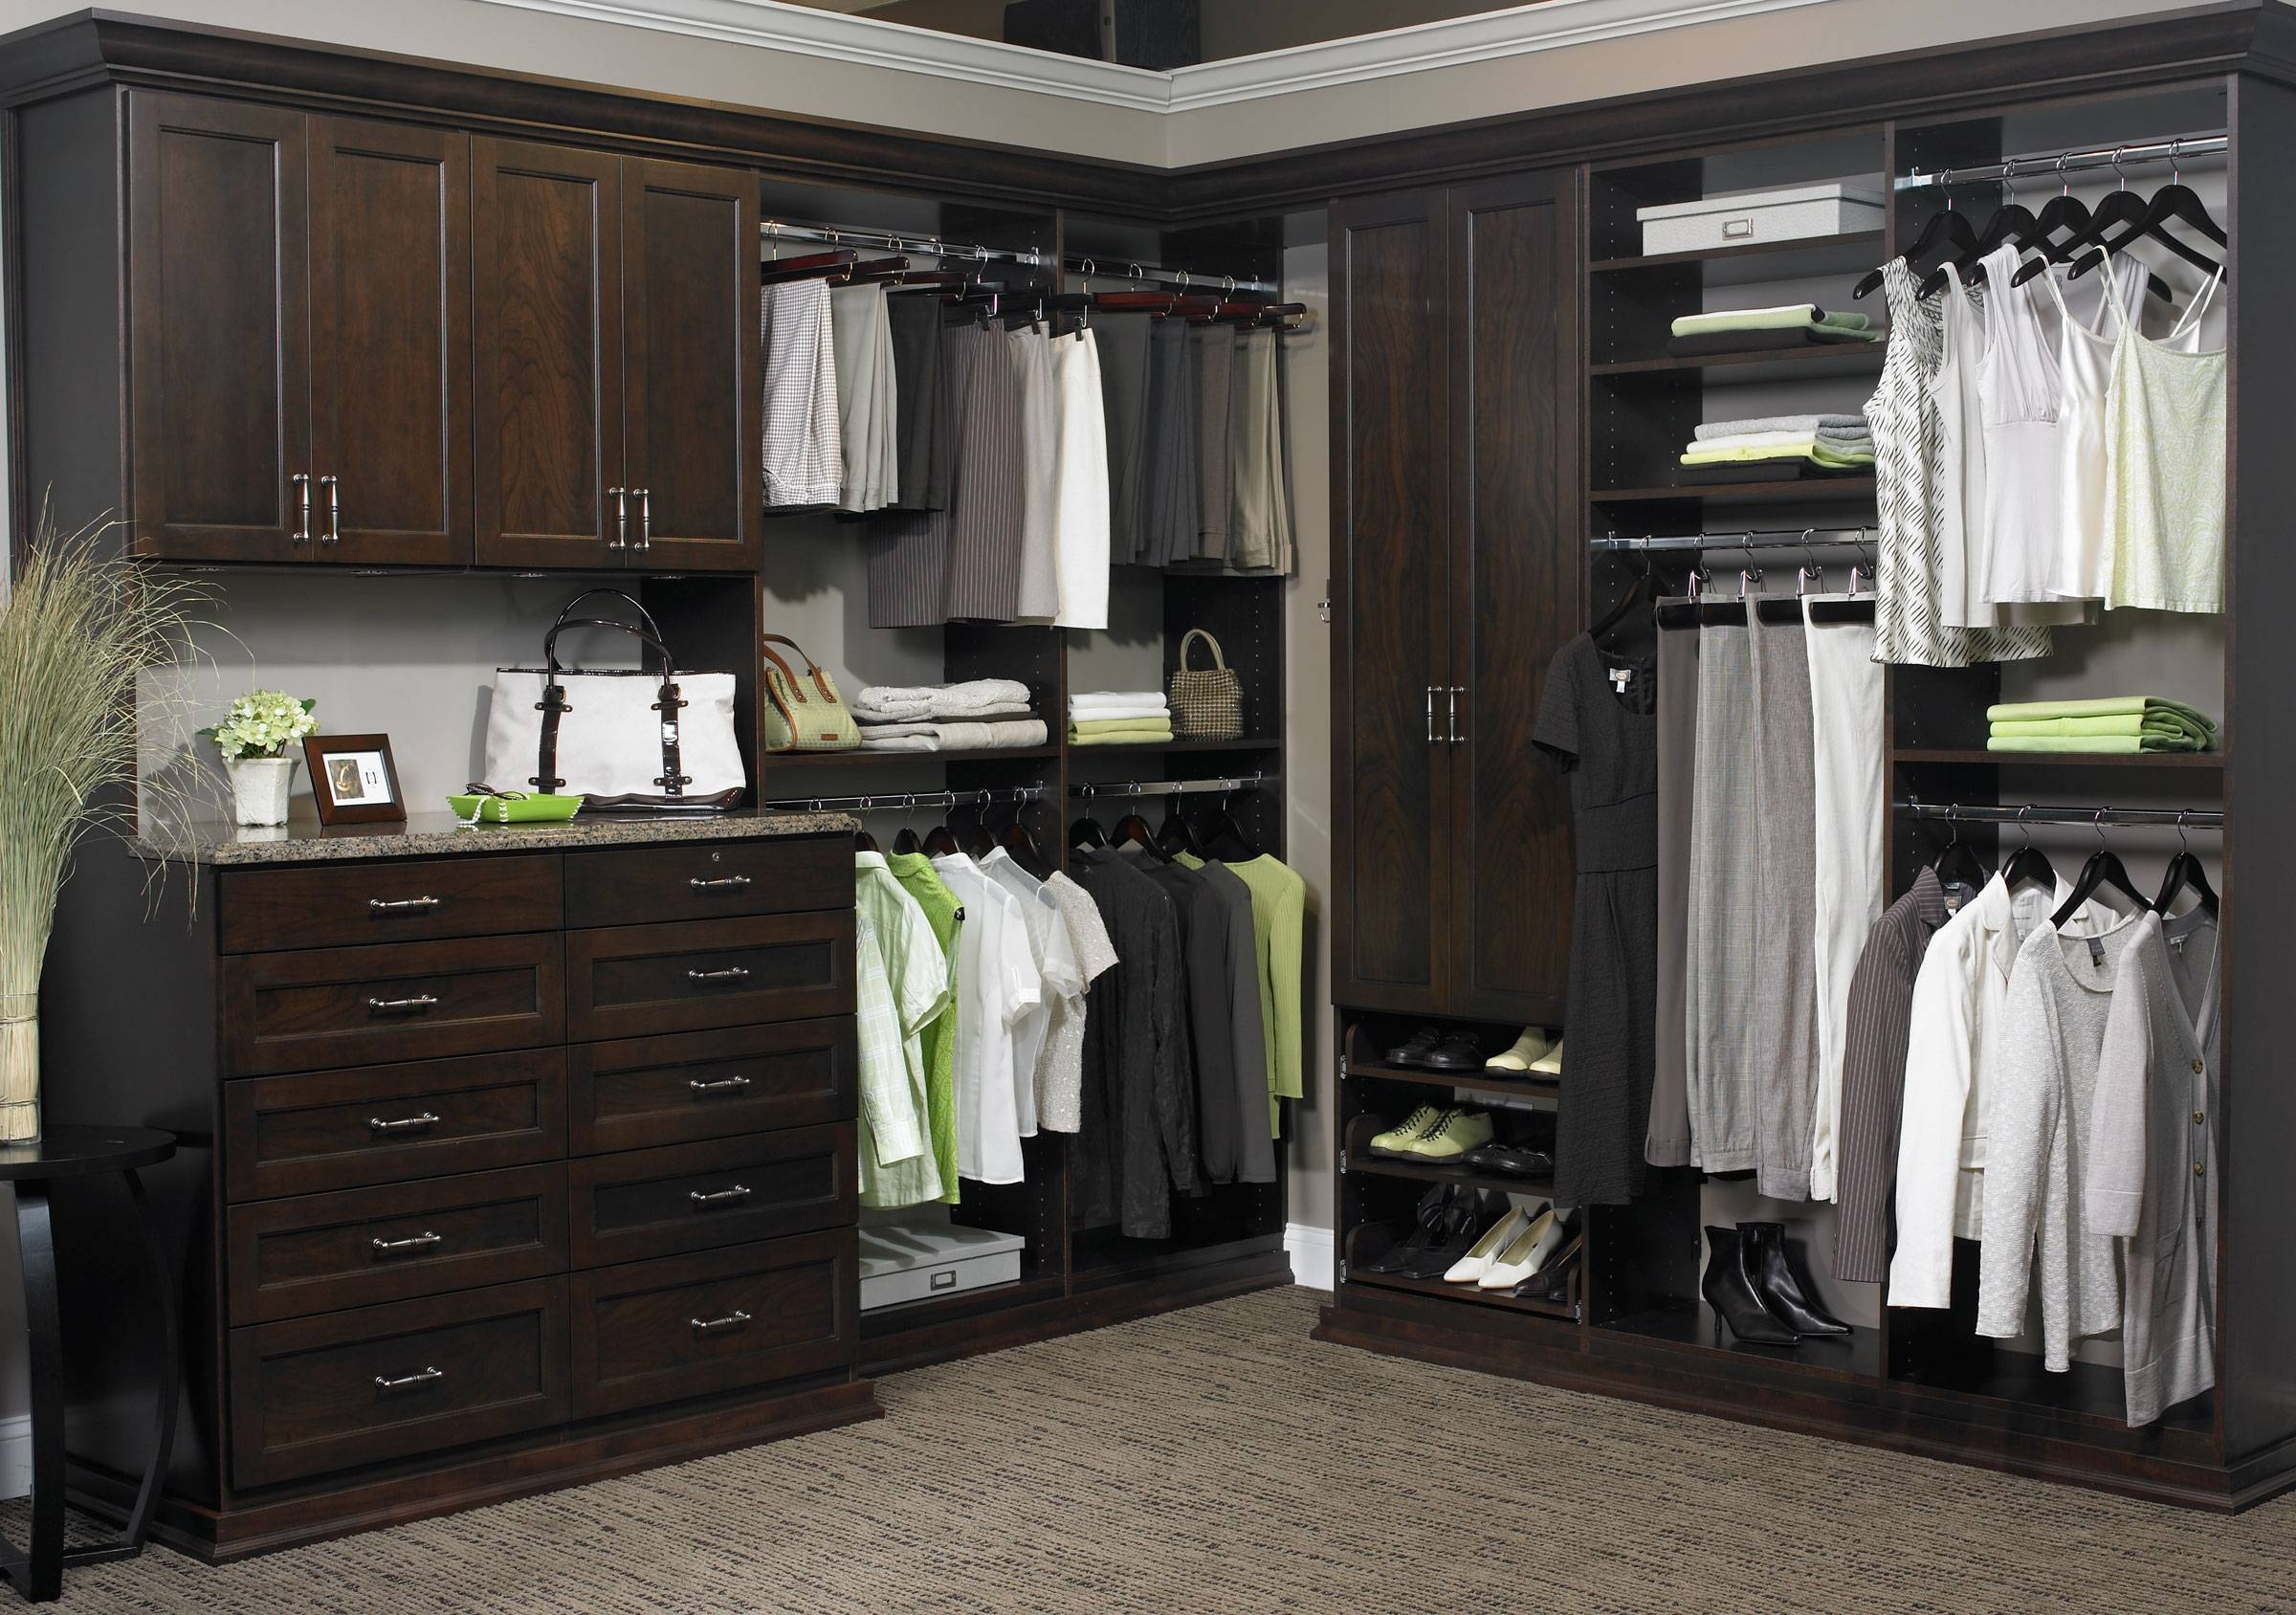 Decorating: Appealing Home Depot Closet Organizer For Home Storage throughout Dark Wood Wardrobe With Drawers (Image 12 of 30)